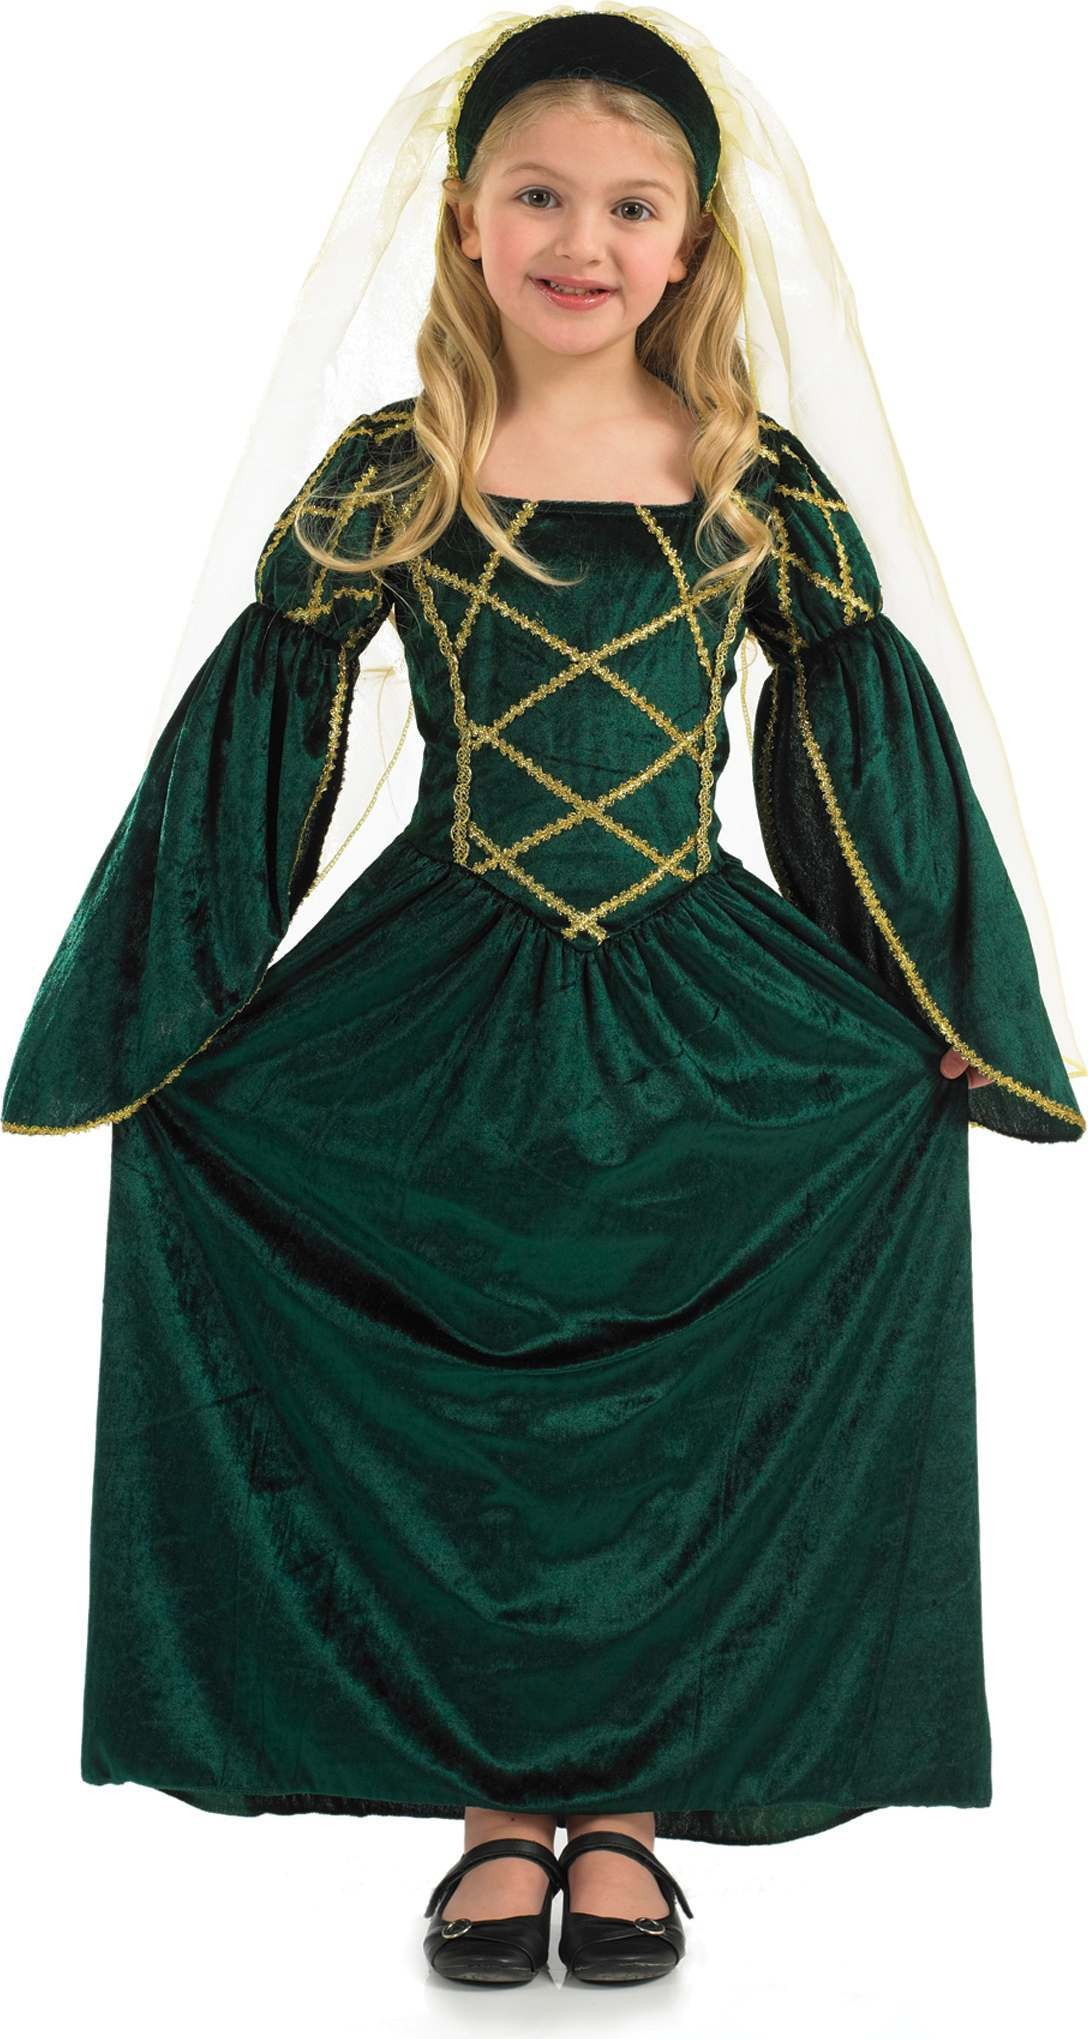 Green Tudor Dress Girl Fancy Dress Costume